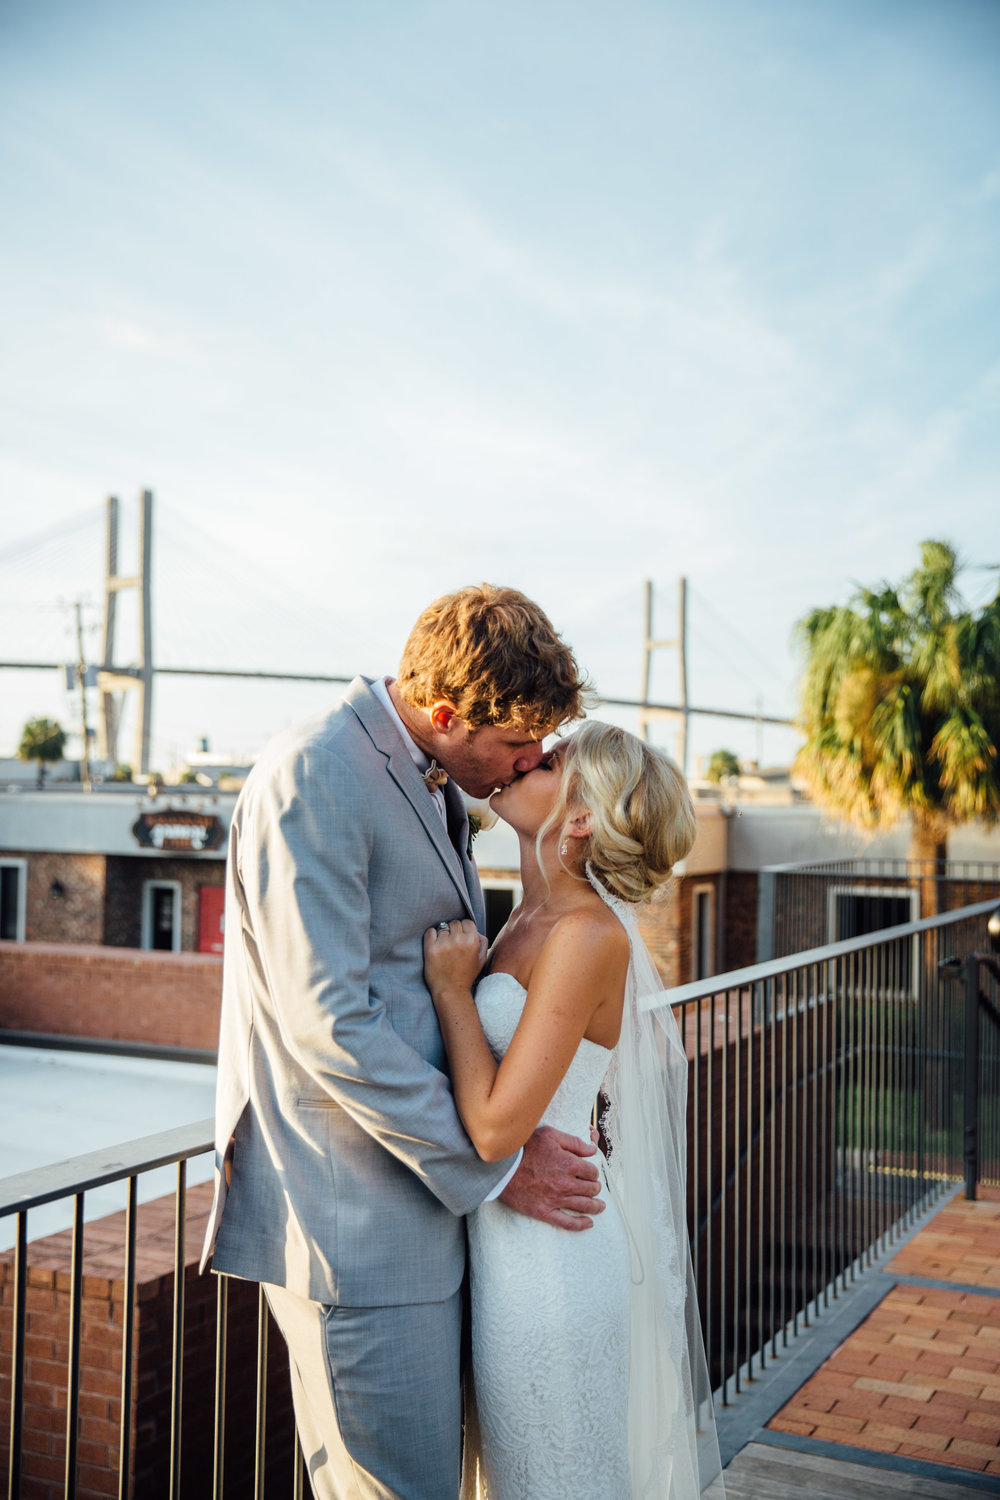 anna-benton-photography-savannah-bridal-boutique-ivory-and-beau-bridal-boutique-ti-adora-7552-lace-wedding-dress-jaclyn-jordan-anne-veil-southern-wedding-savannah-wedding-coastal-wedidng-savannah-wedding-planner-savannah-florist-savannah-weddings-17.jpg